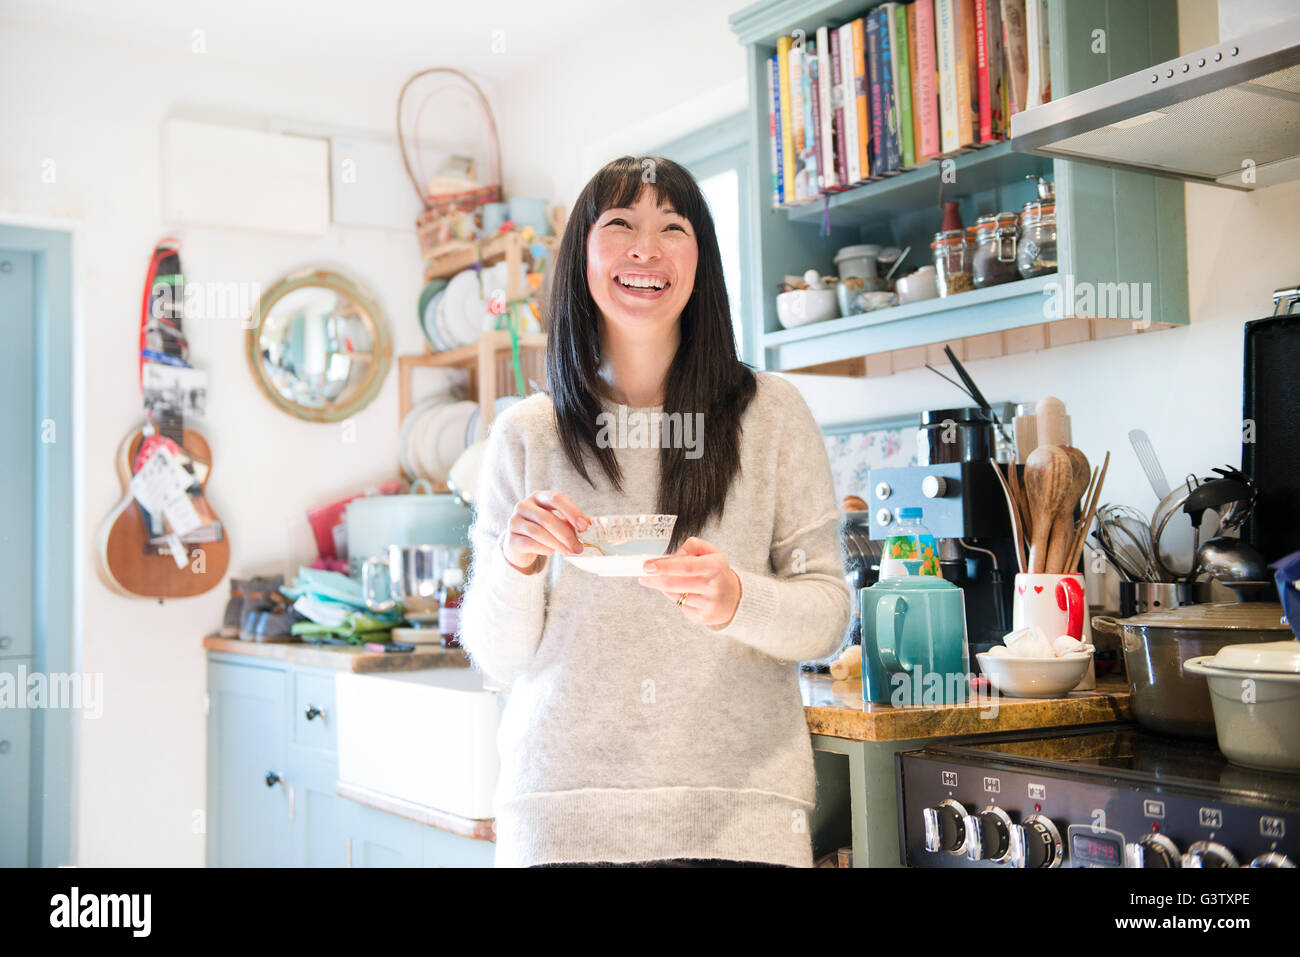 A dark haired woman standing in a kitchen chatting holding a tea cup. - Stock Image